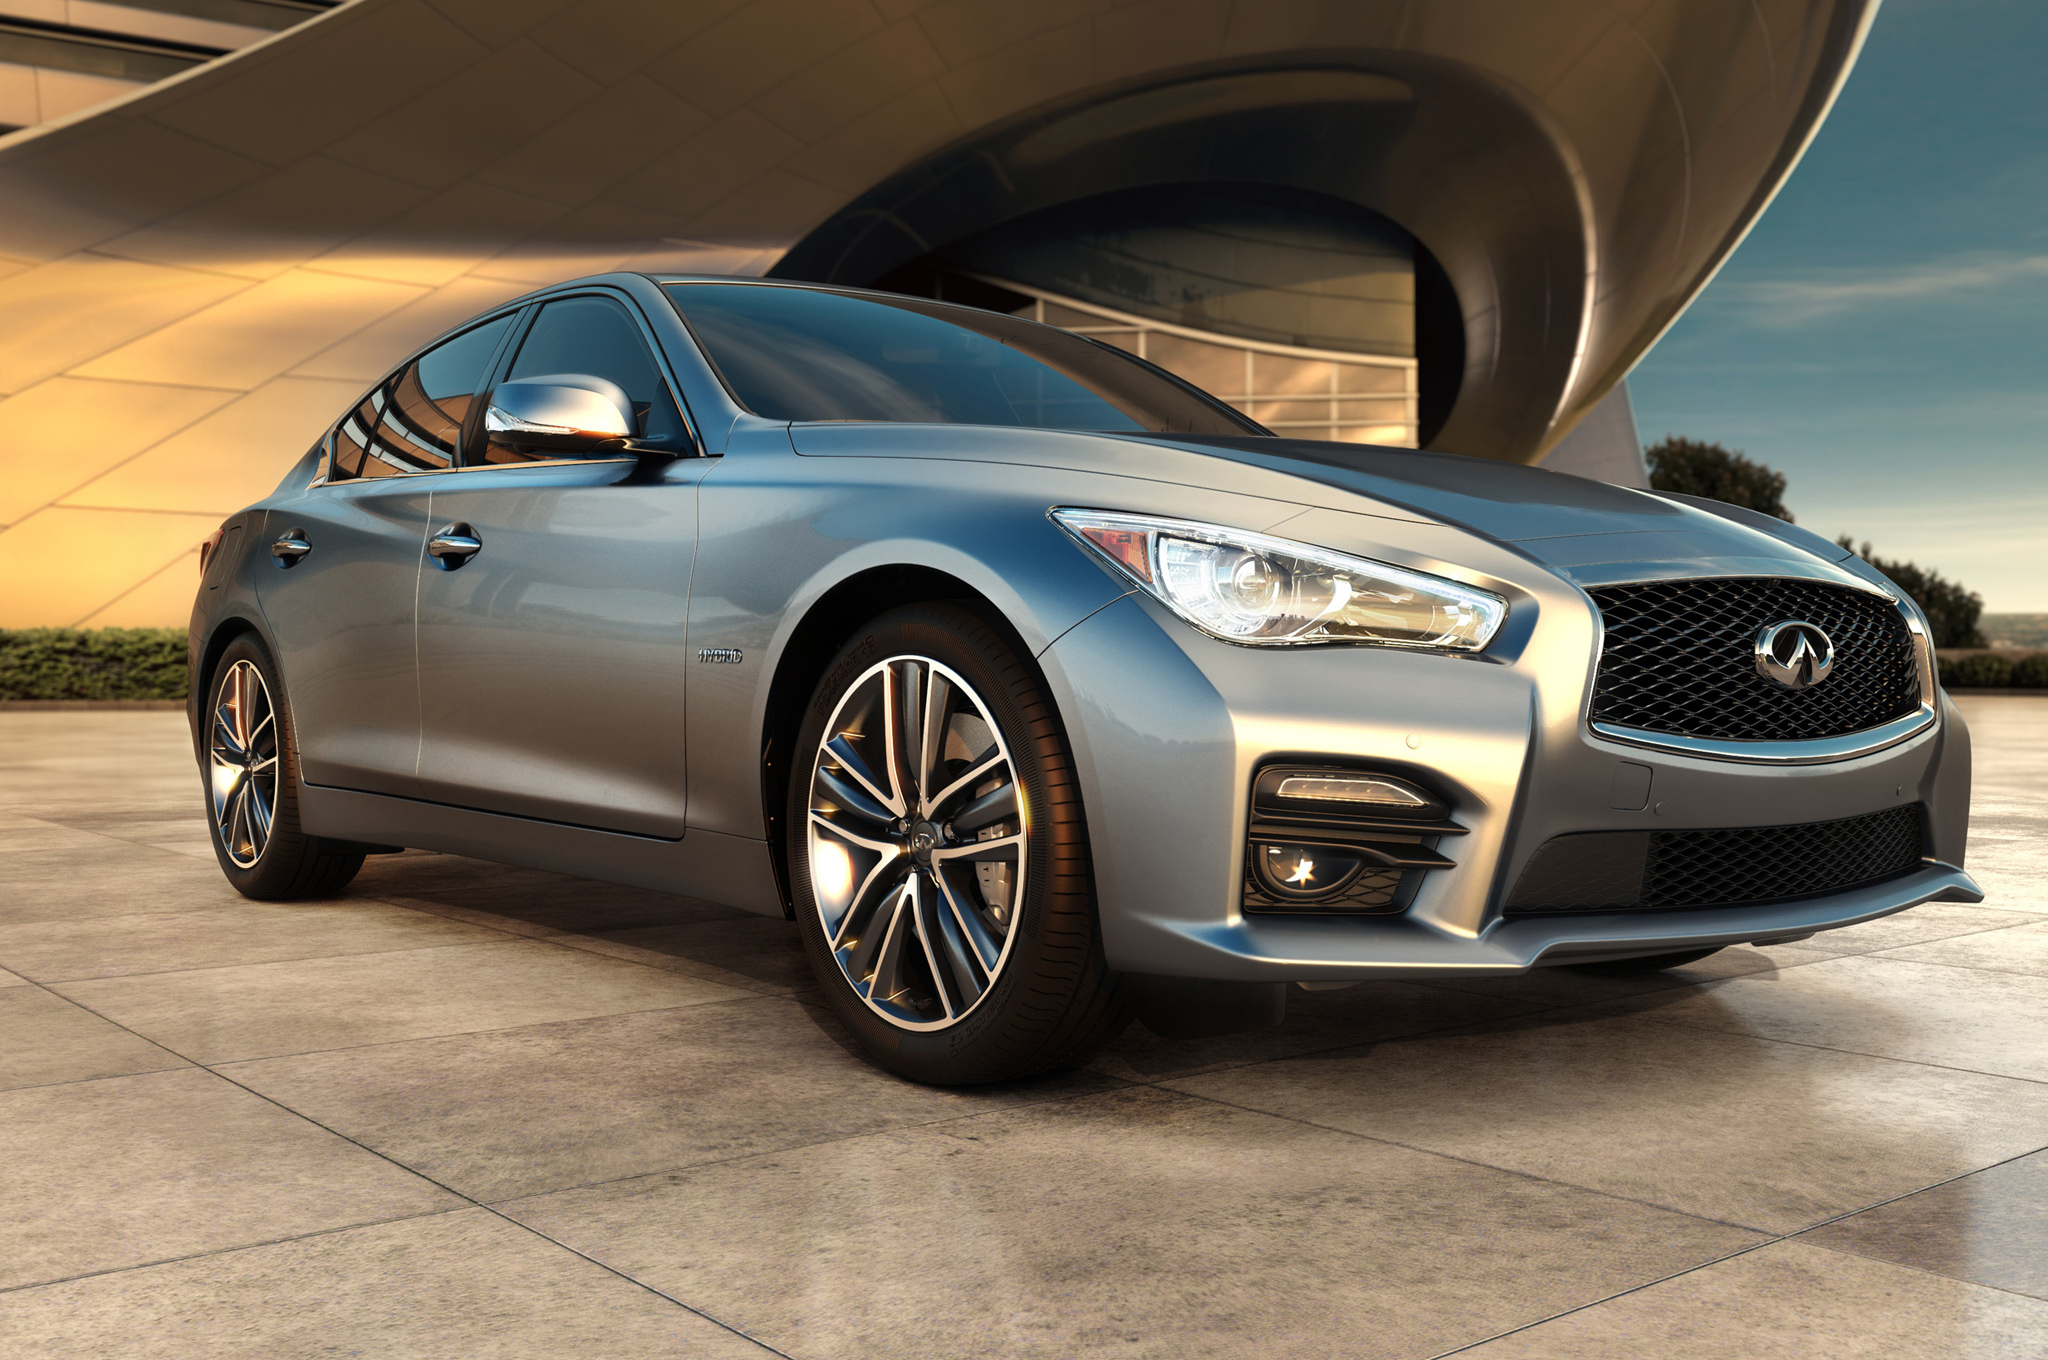 2014 Infiniti Q50 ficially Priced at $37 605 Hybrid at $44 855